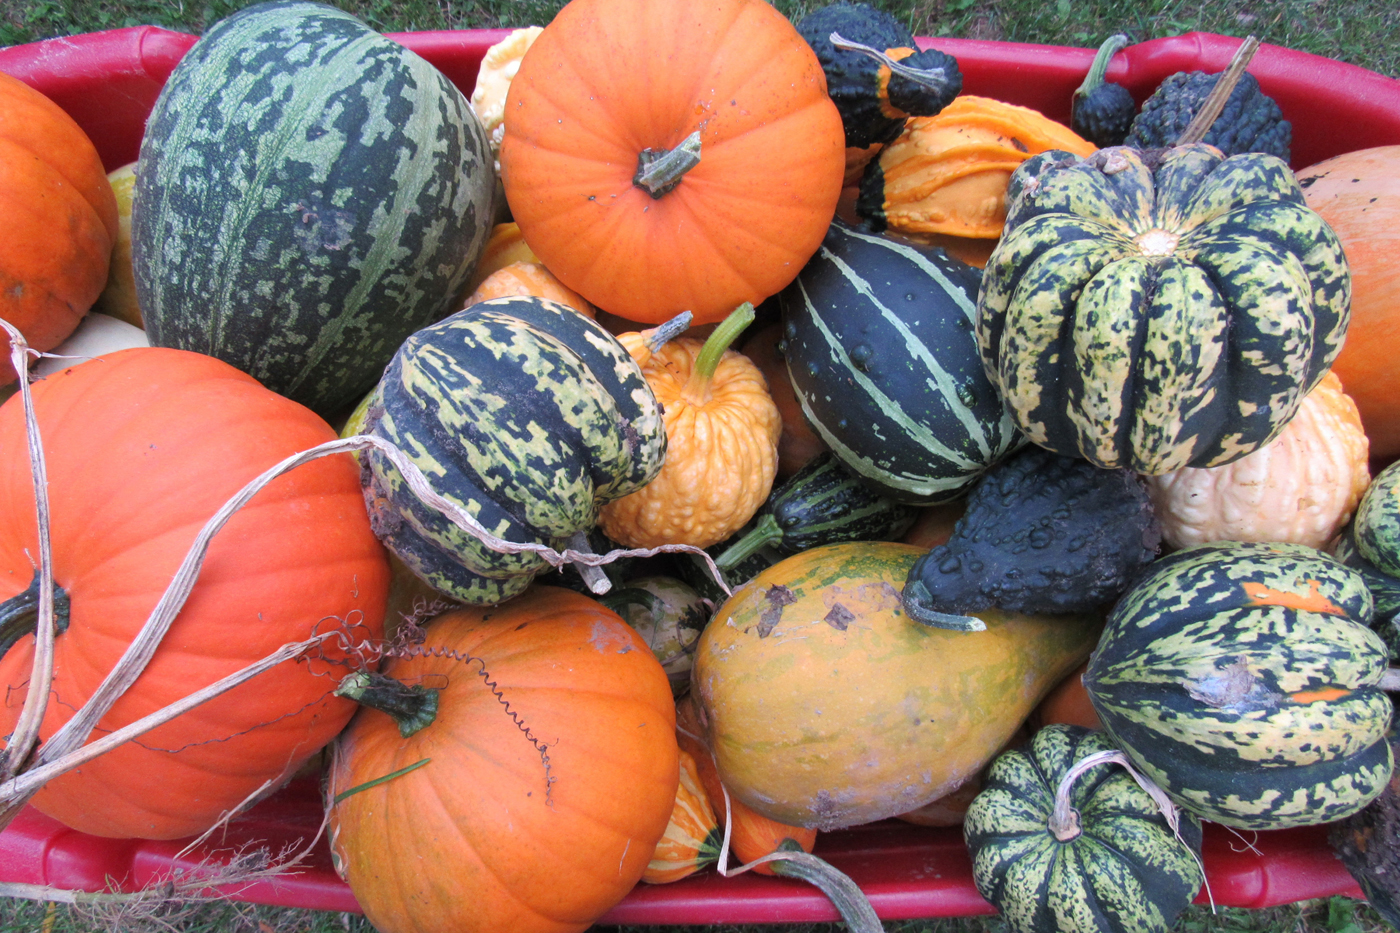 A mix of recently harvested pumpkins, winter squash and gourds. Knowing how to care for these fruits after harvest can prolong their life and beauty. K. Gabalski photo